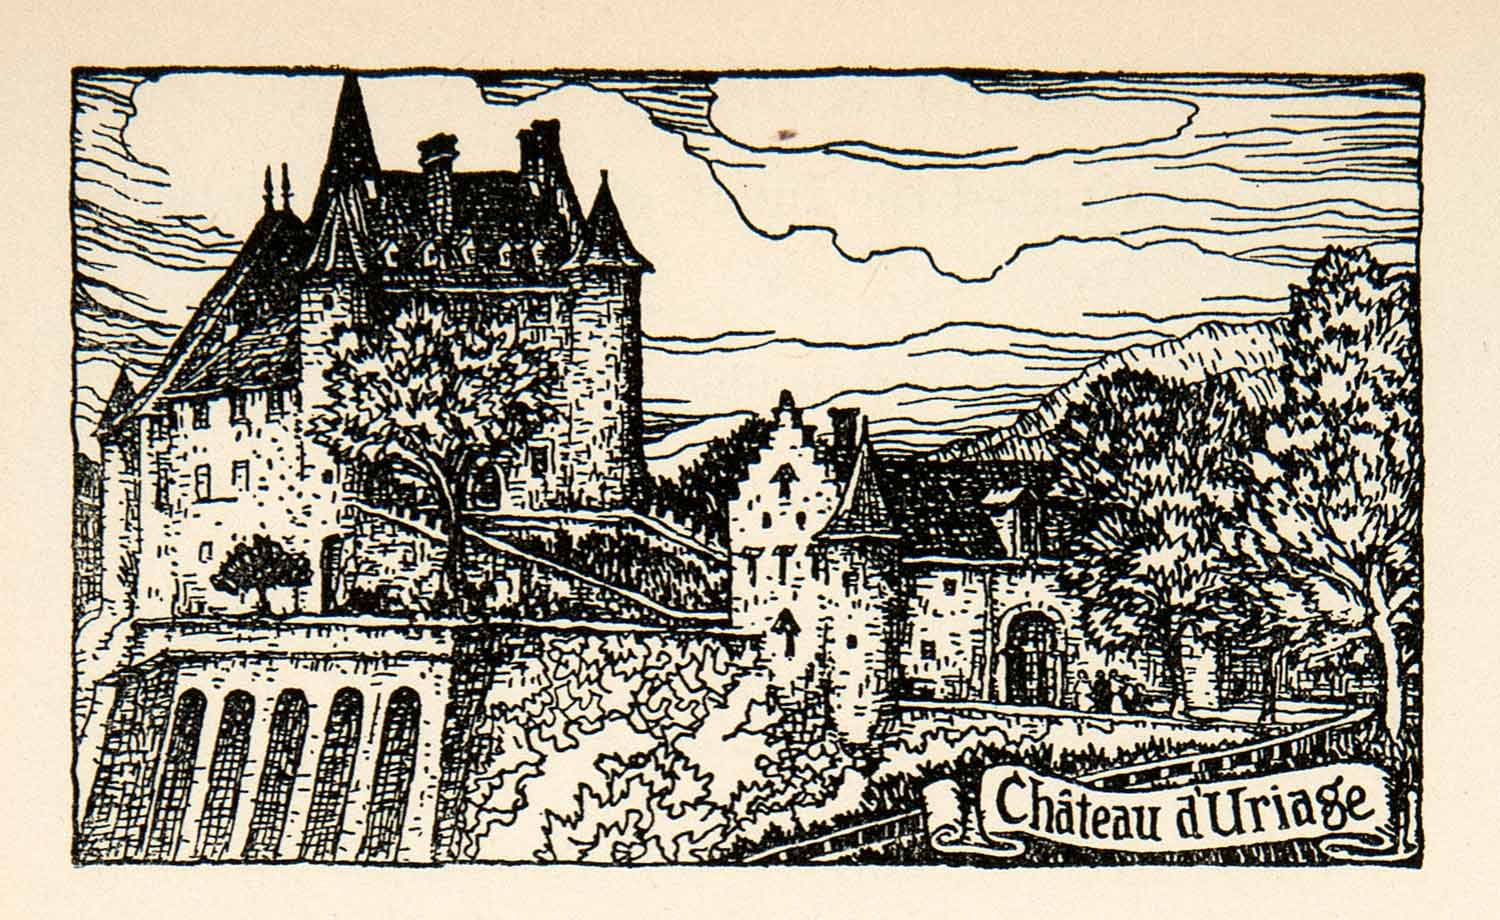 1927 Lithograph Chateau d'Urage France Castle Fortress Cityscape Thornton XGHB7